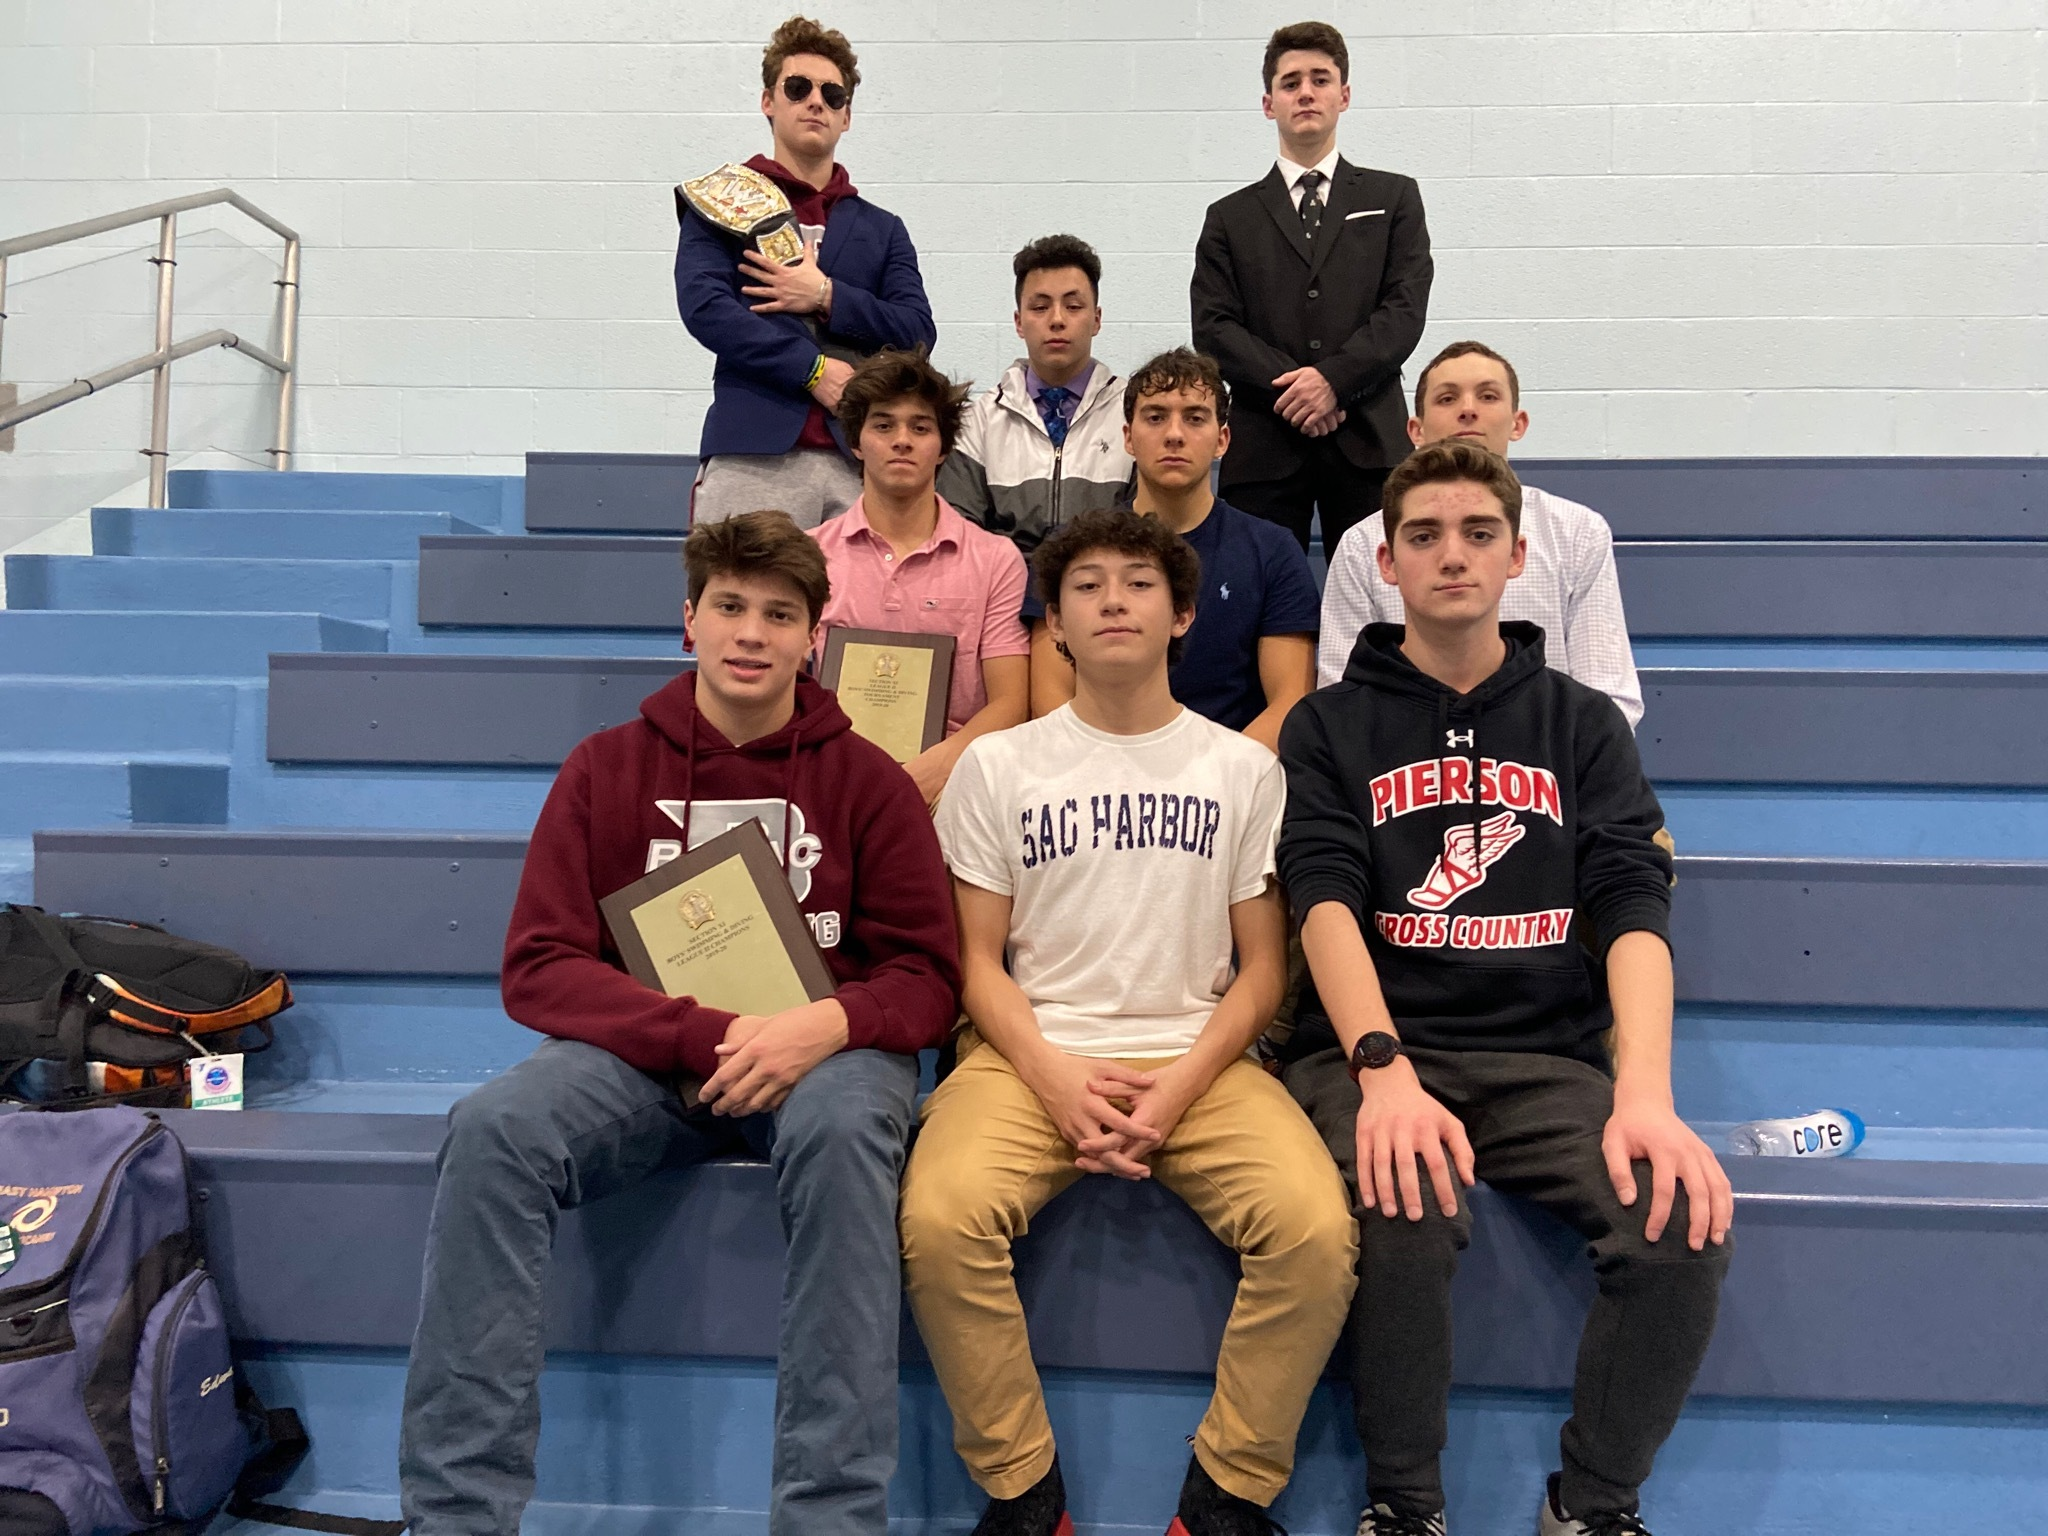 Pierson swimmers who helped the East Hampton boys swimming team win its second straight League II Championships.